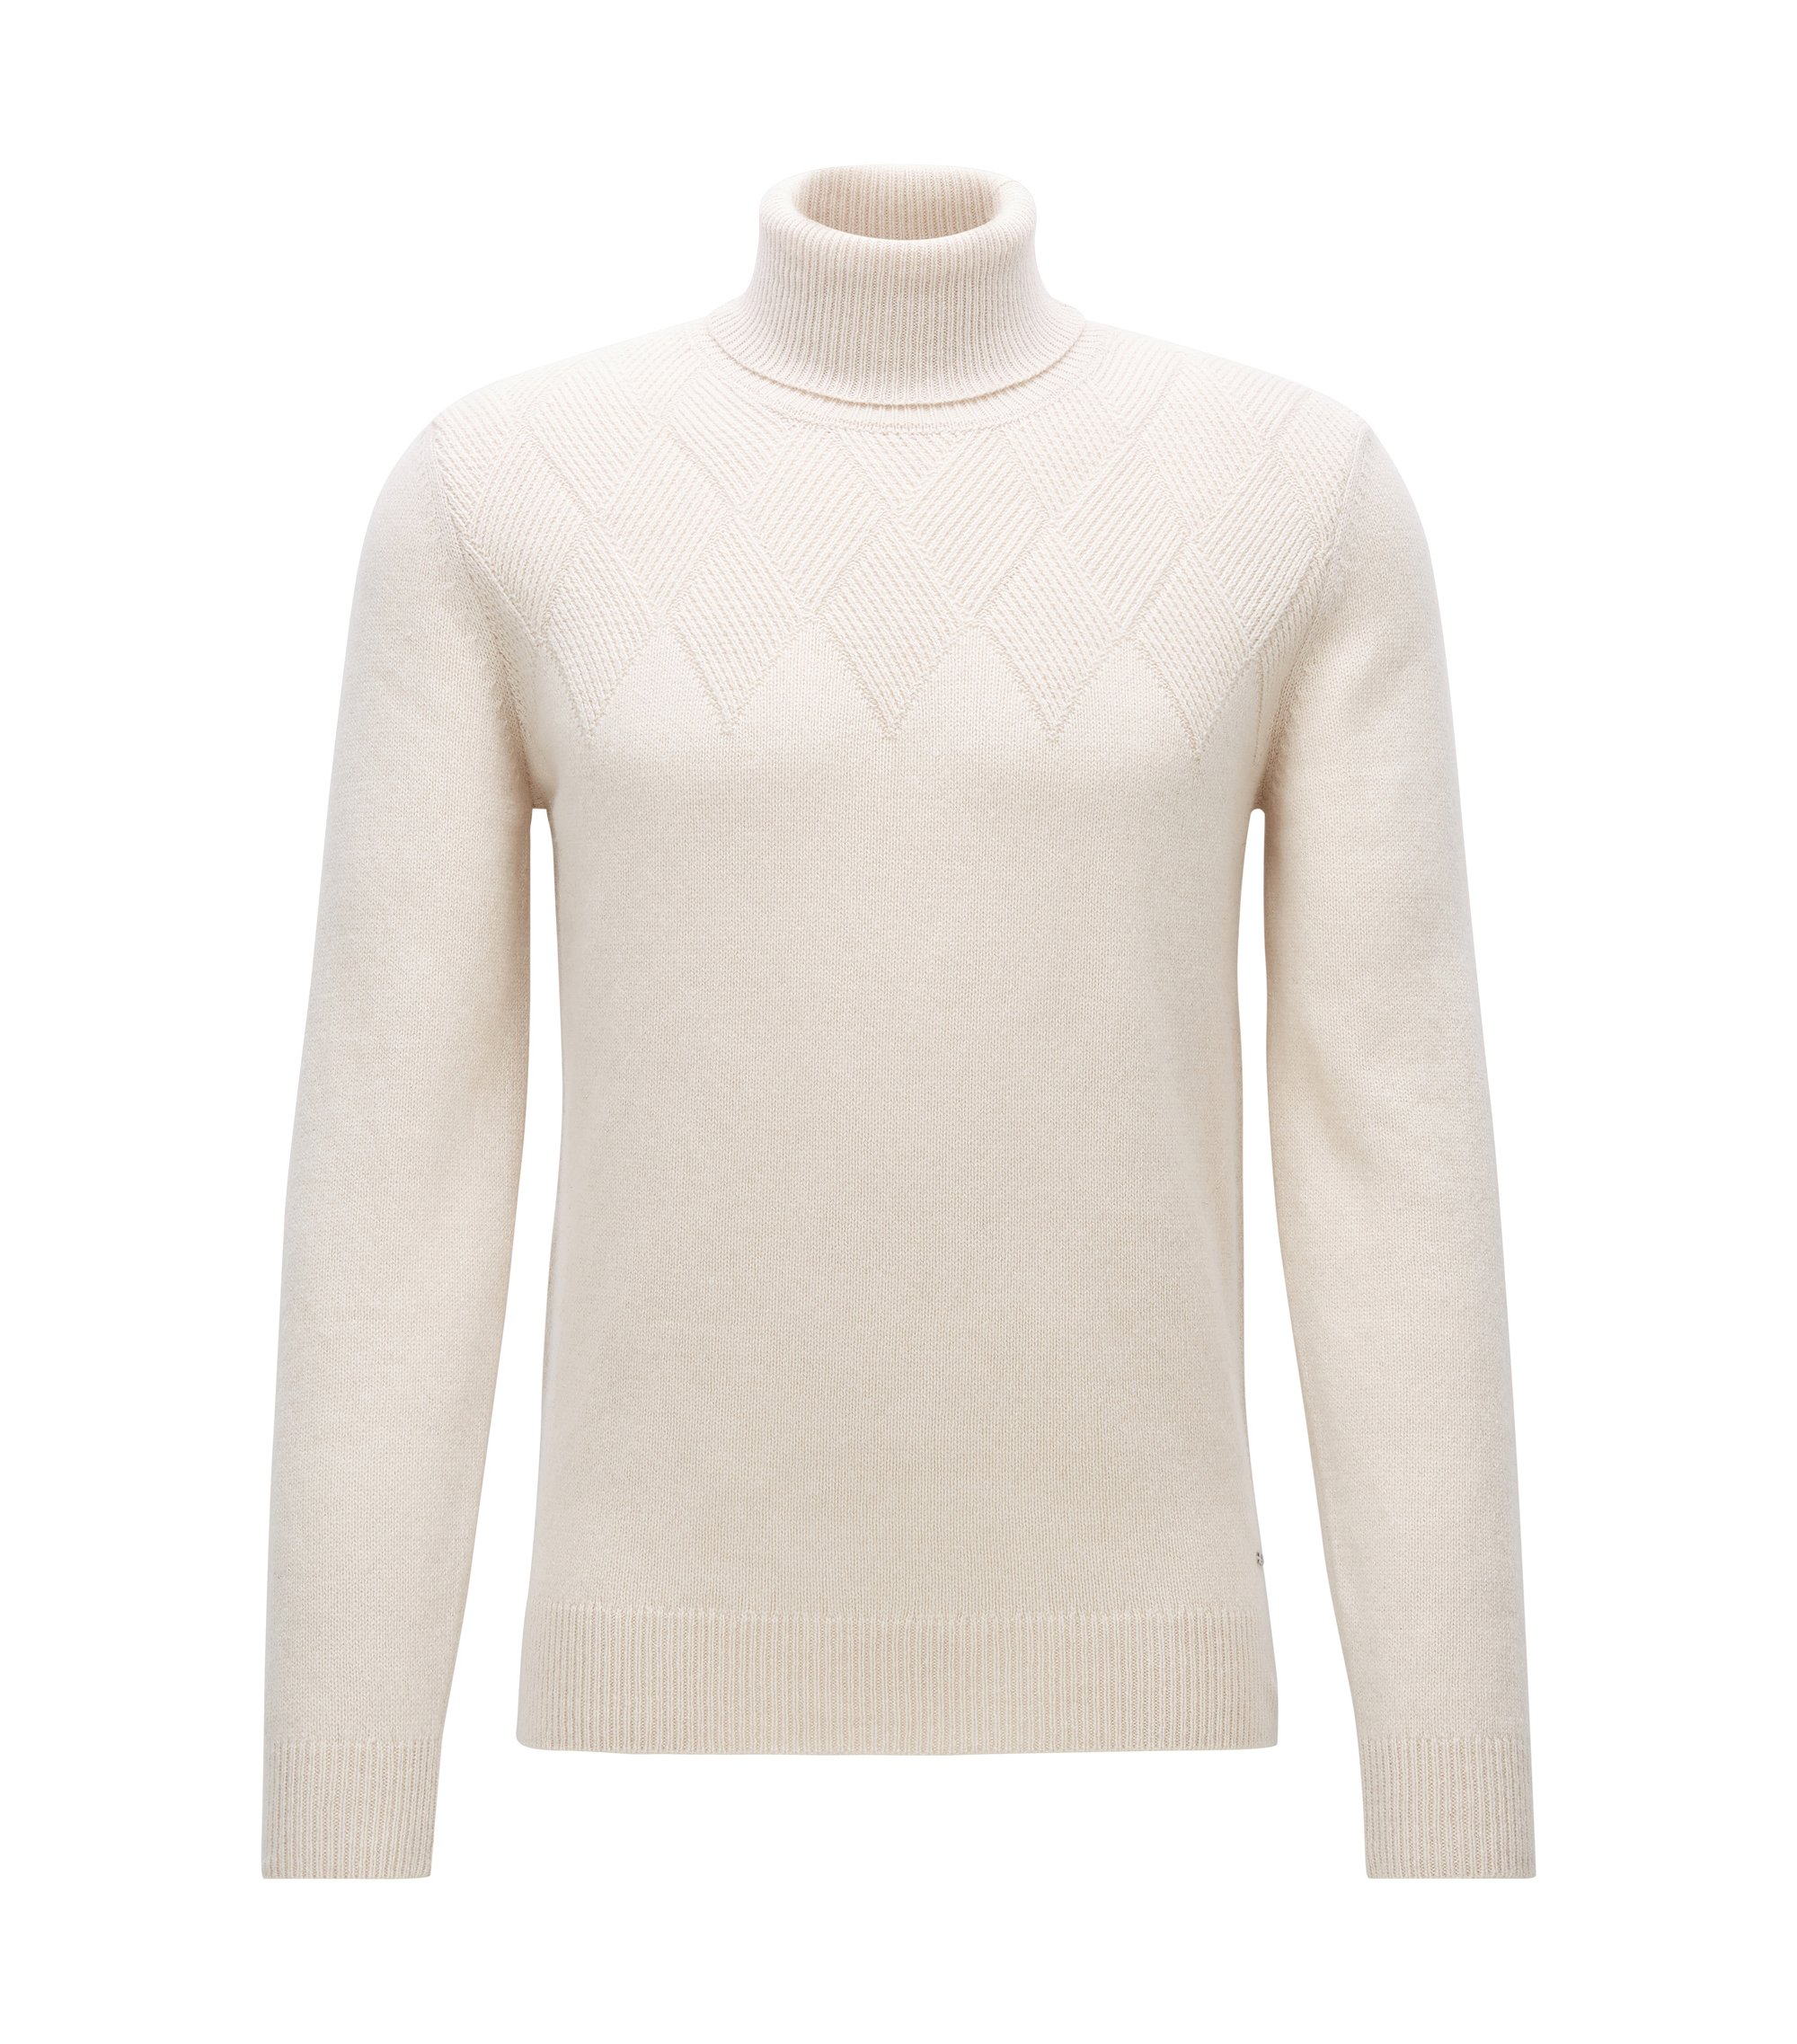 Diamond-structure sweater in a cashmere blend, Natural